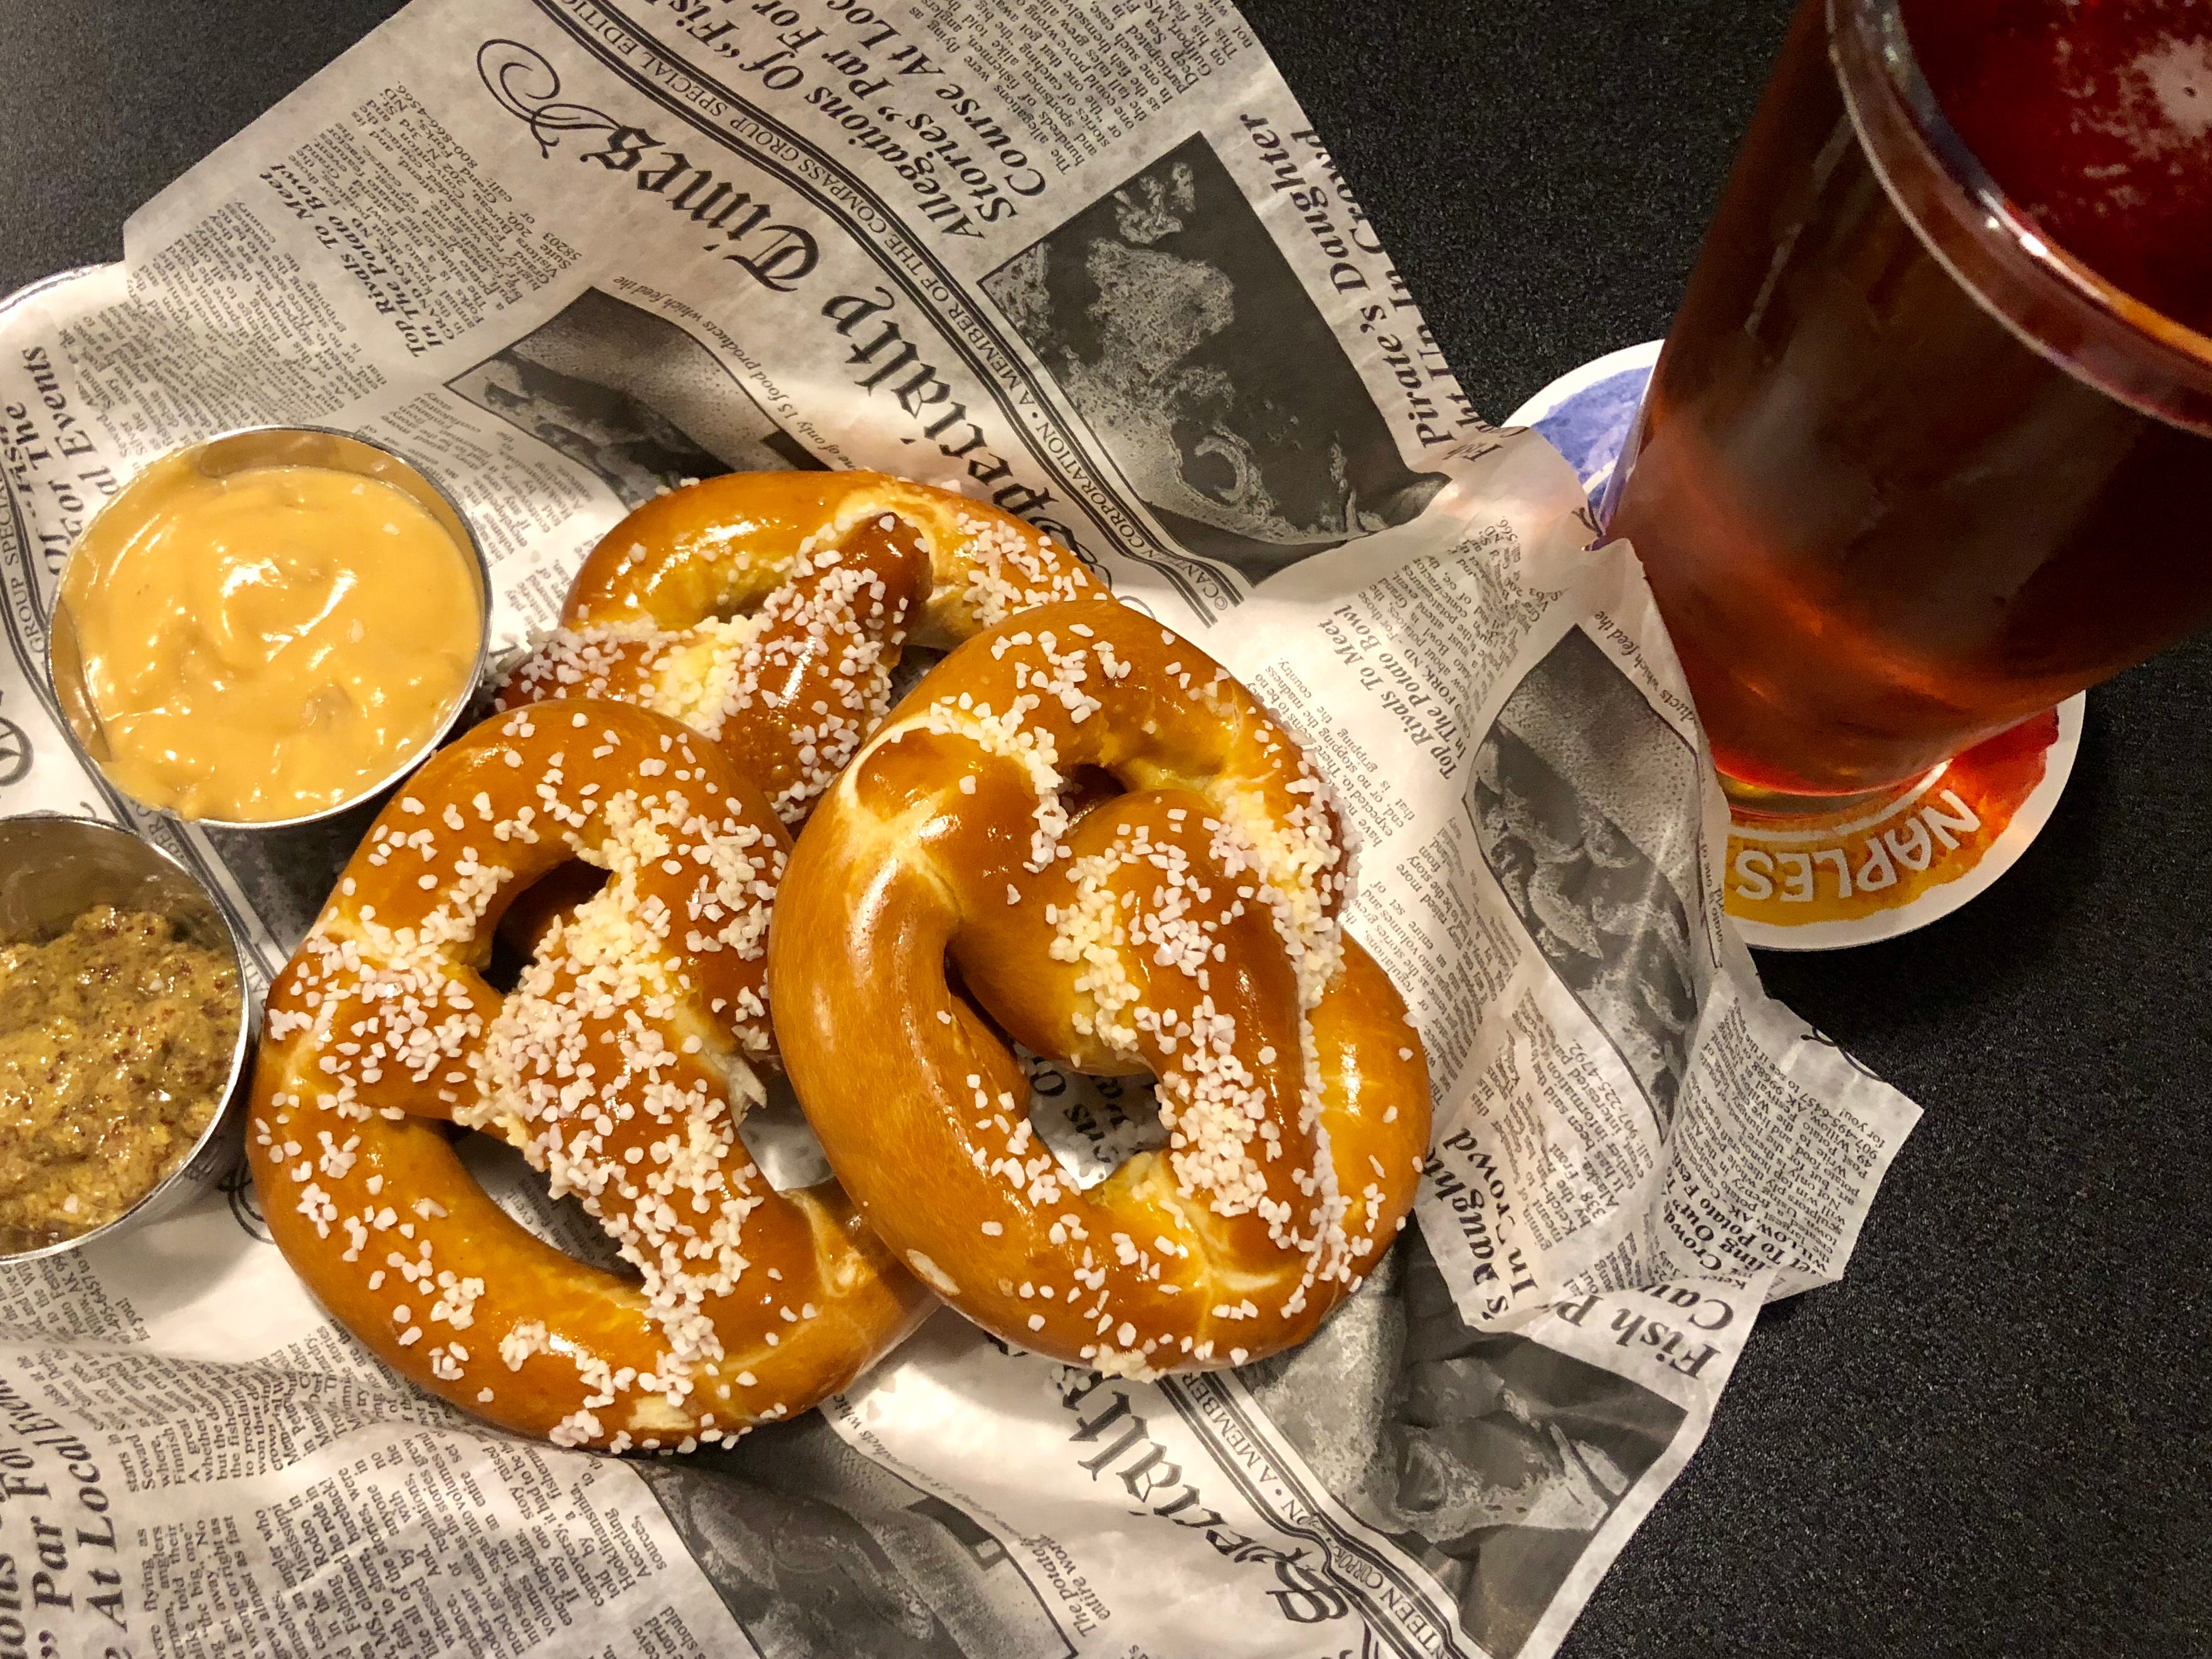 Bavarian-style pretzels with locally crafted beer cheese and stone-ground mustard at Southern Latitudes Brewpub in Naples.